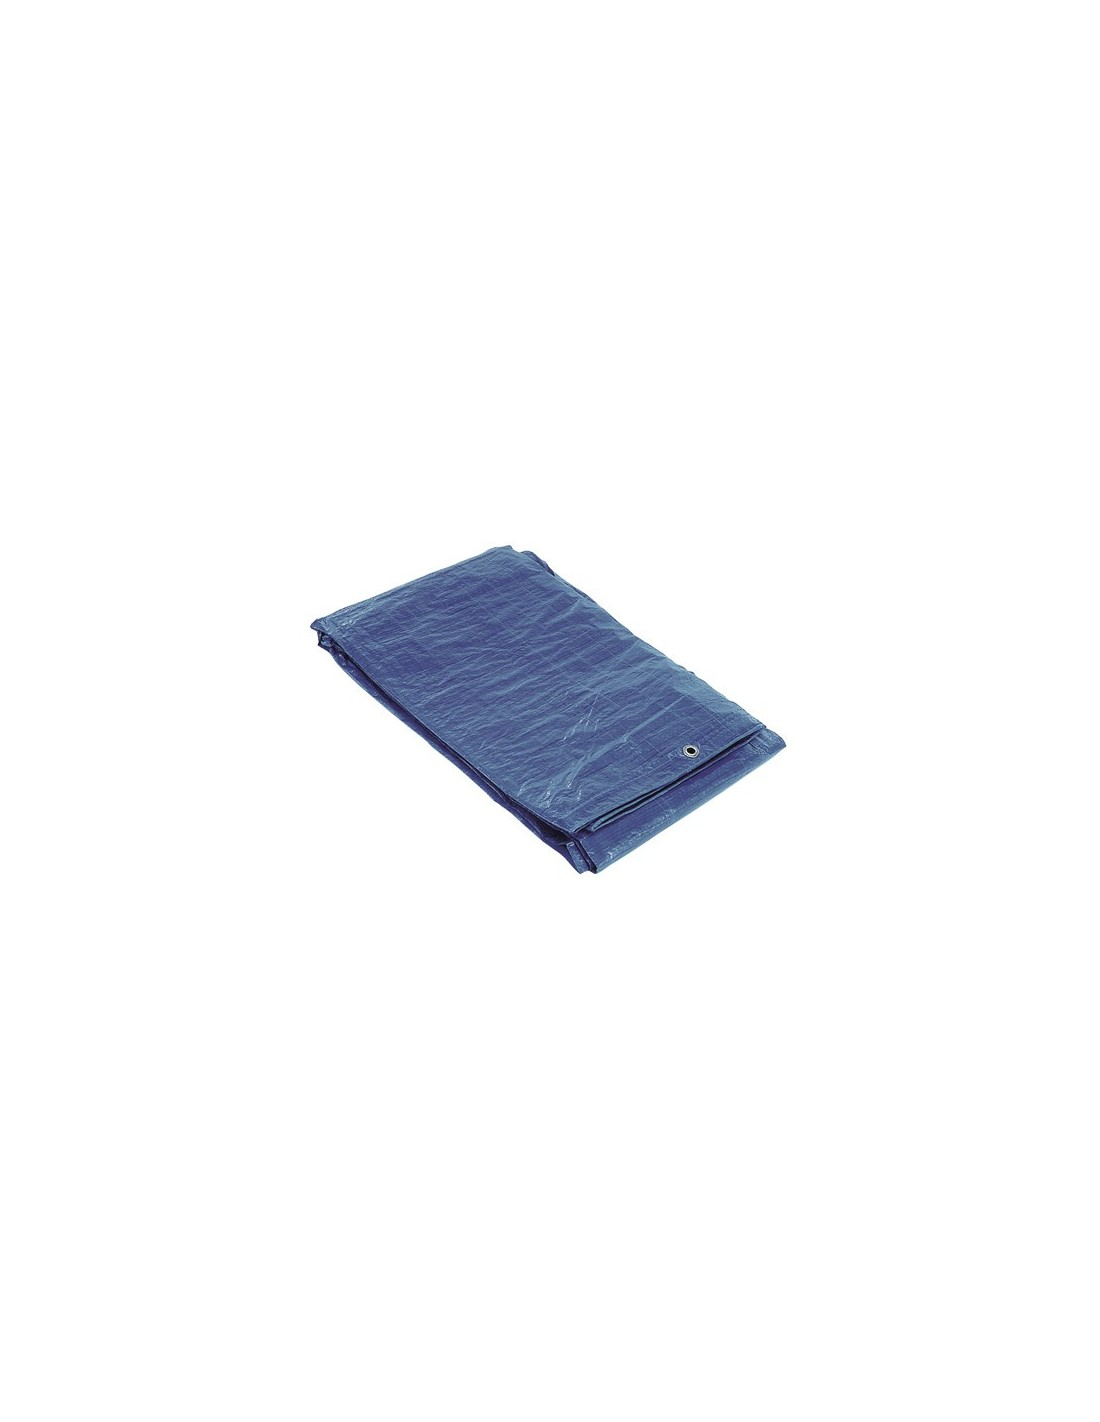 Colchon camping inflable individual 188x99x22cm for Medidas colchon individual